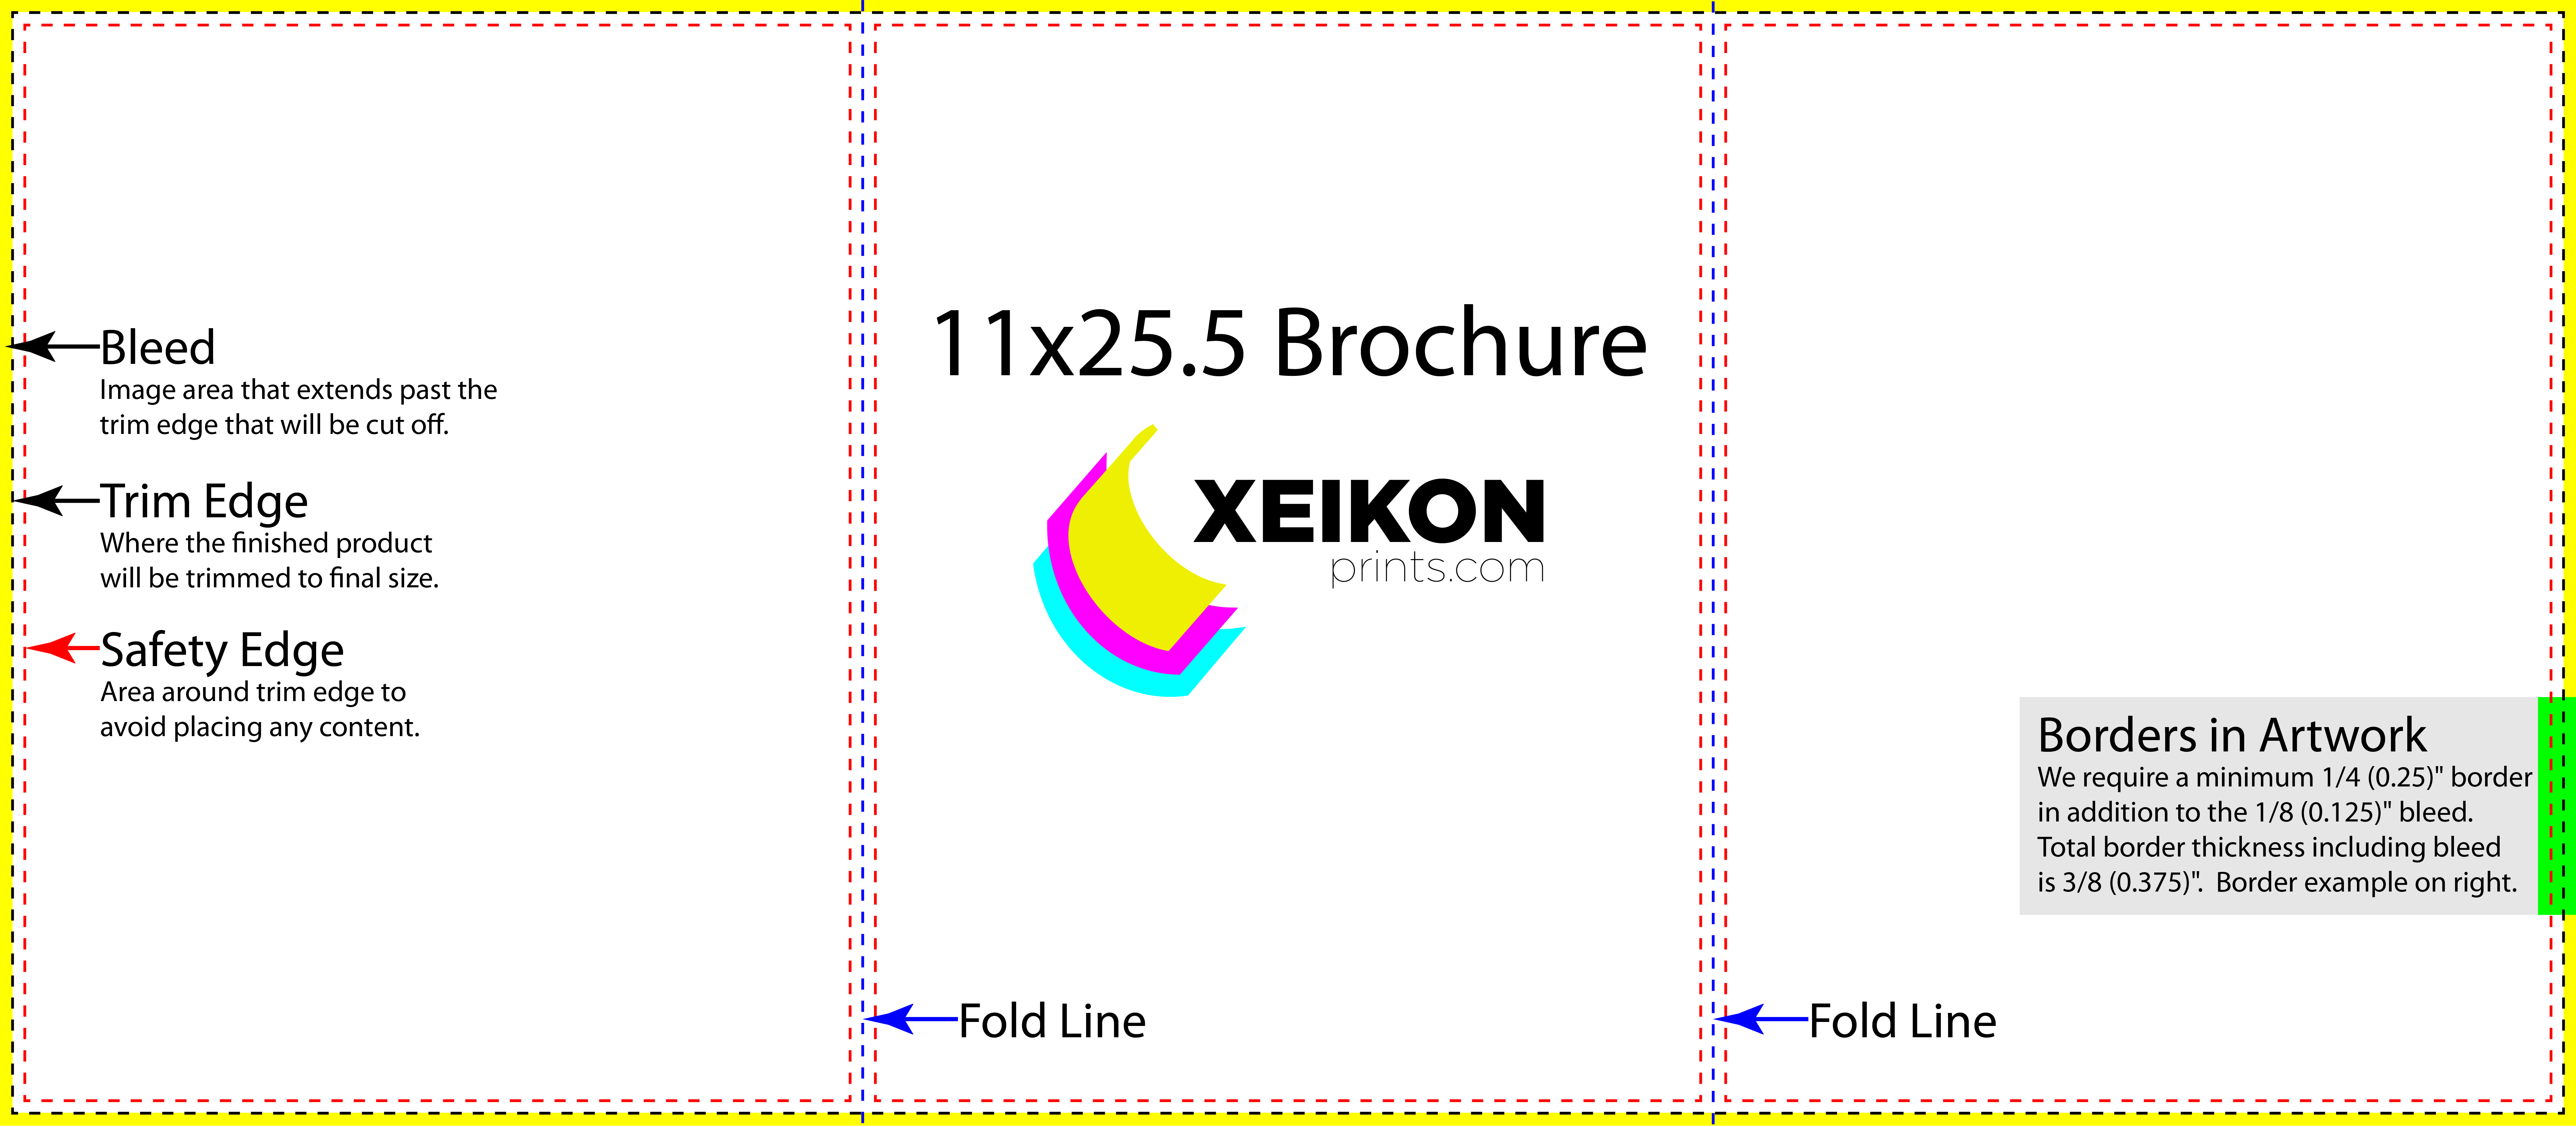 X Trifold Brochure - Brochure trifold template